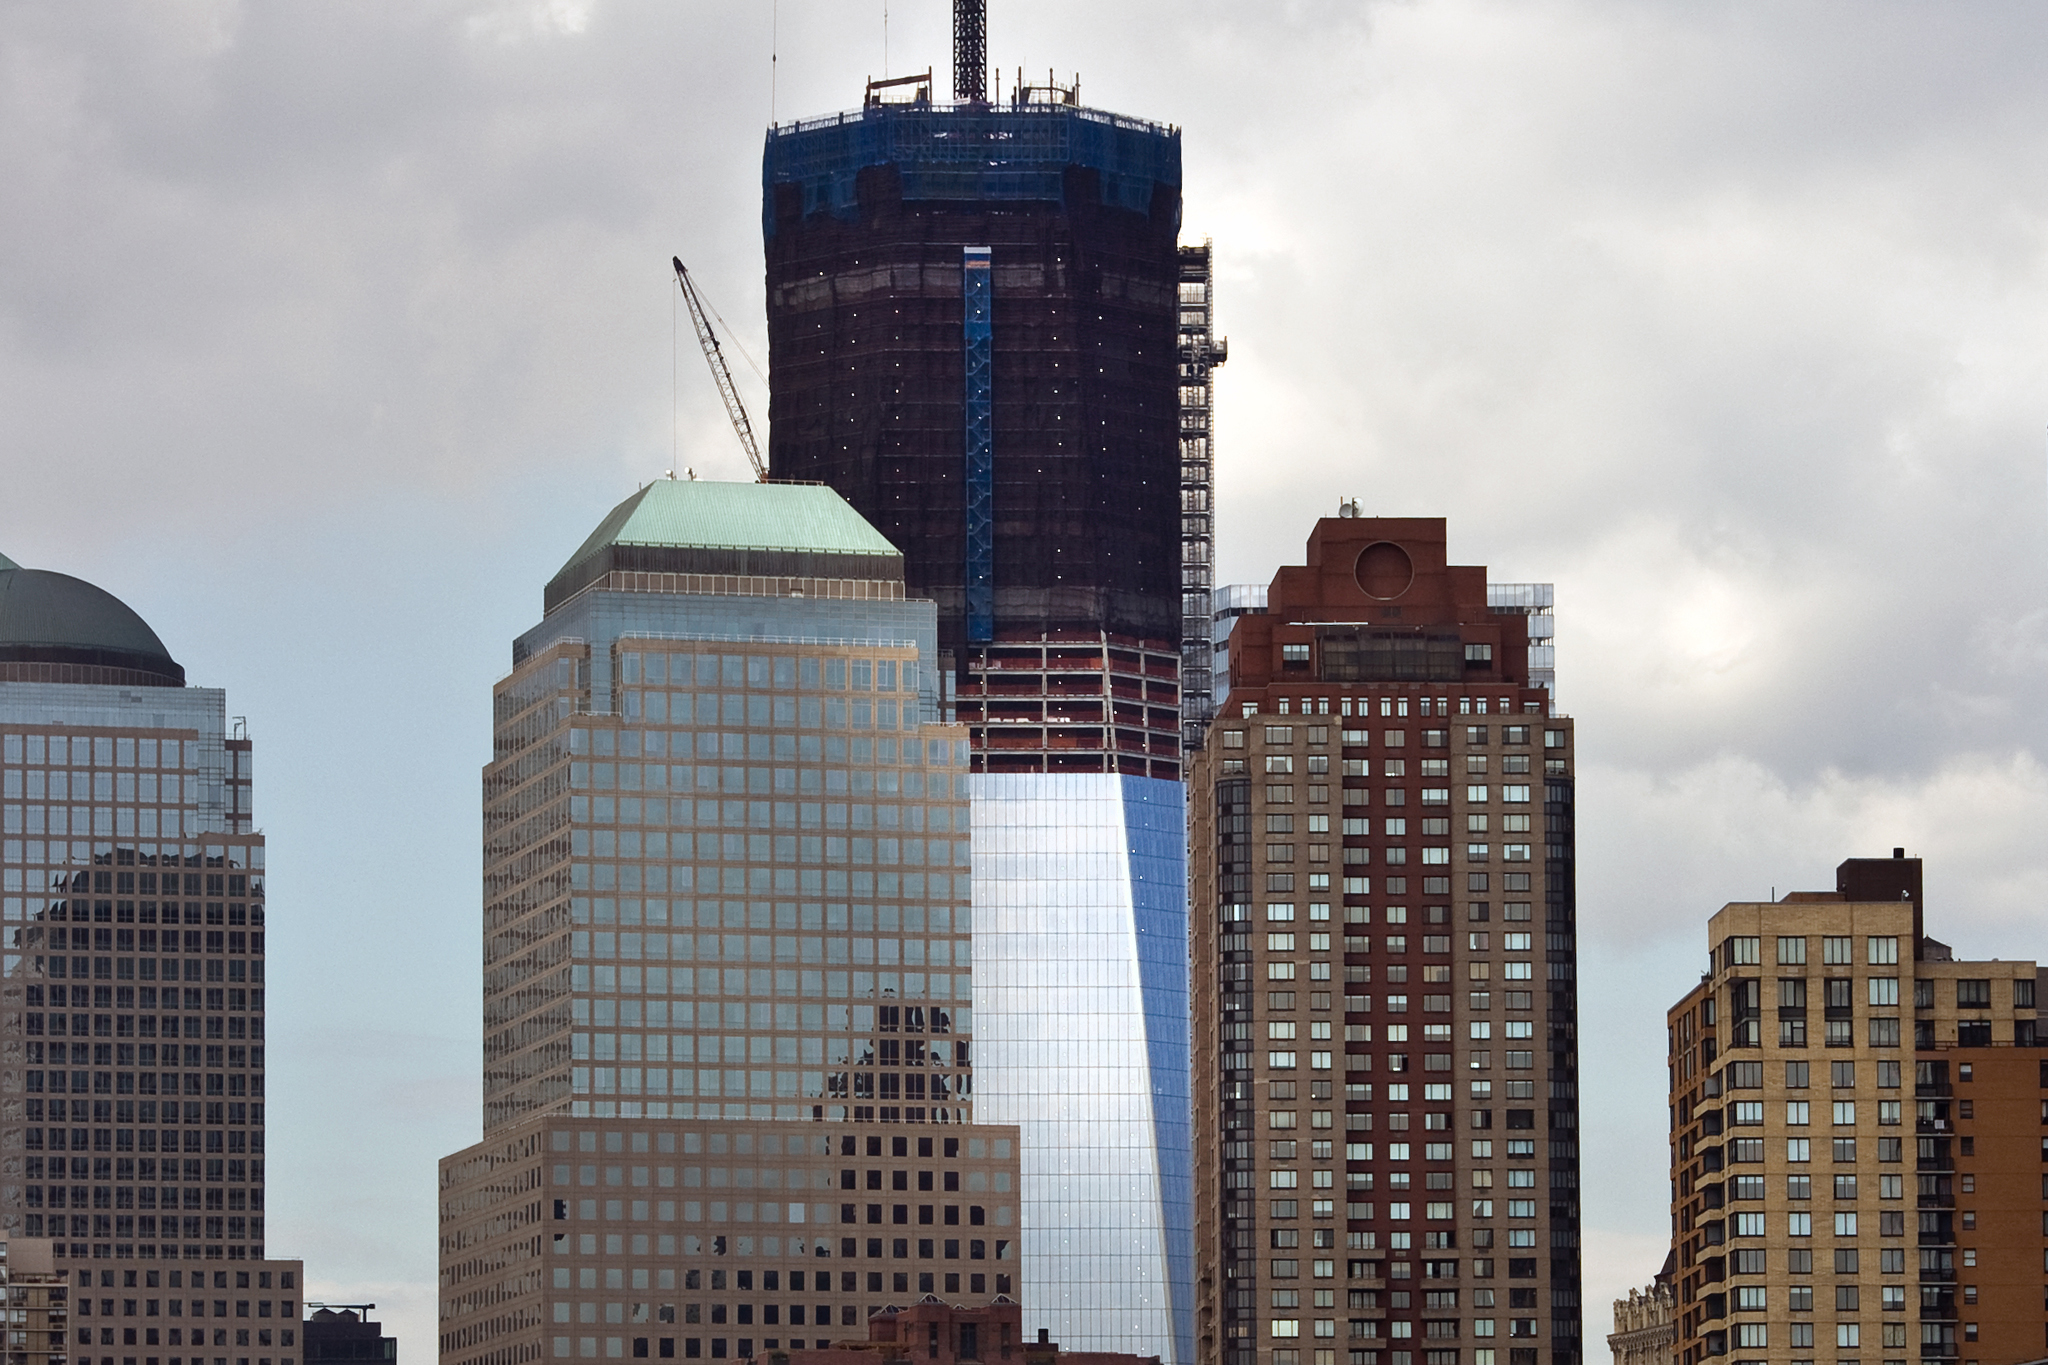 Parallel Stories: The World Trade Center and Battery Park City